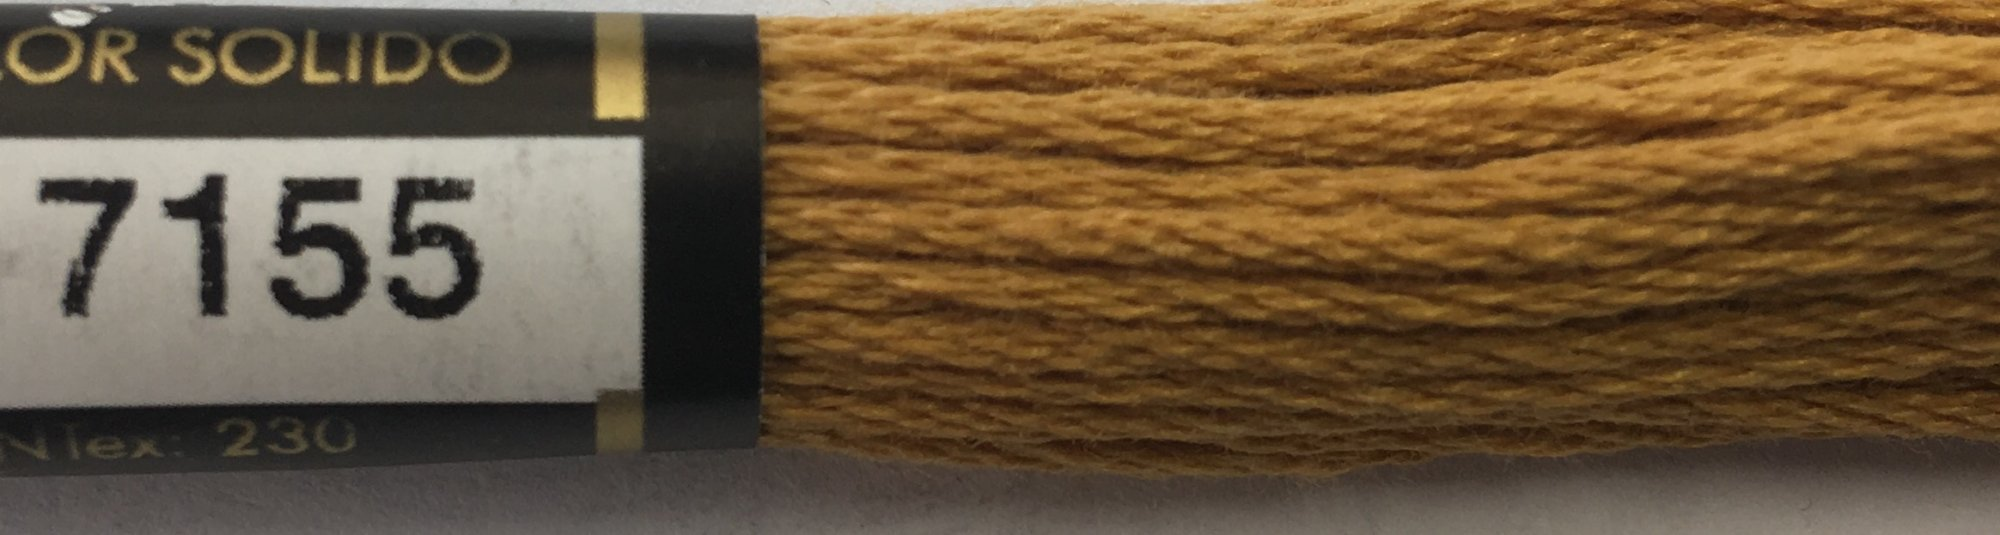 F7155 Presencia 100% Mercerized Finca Cotton 6 ply Embroidery Floss 8 meter skein